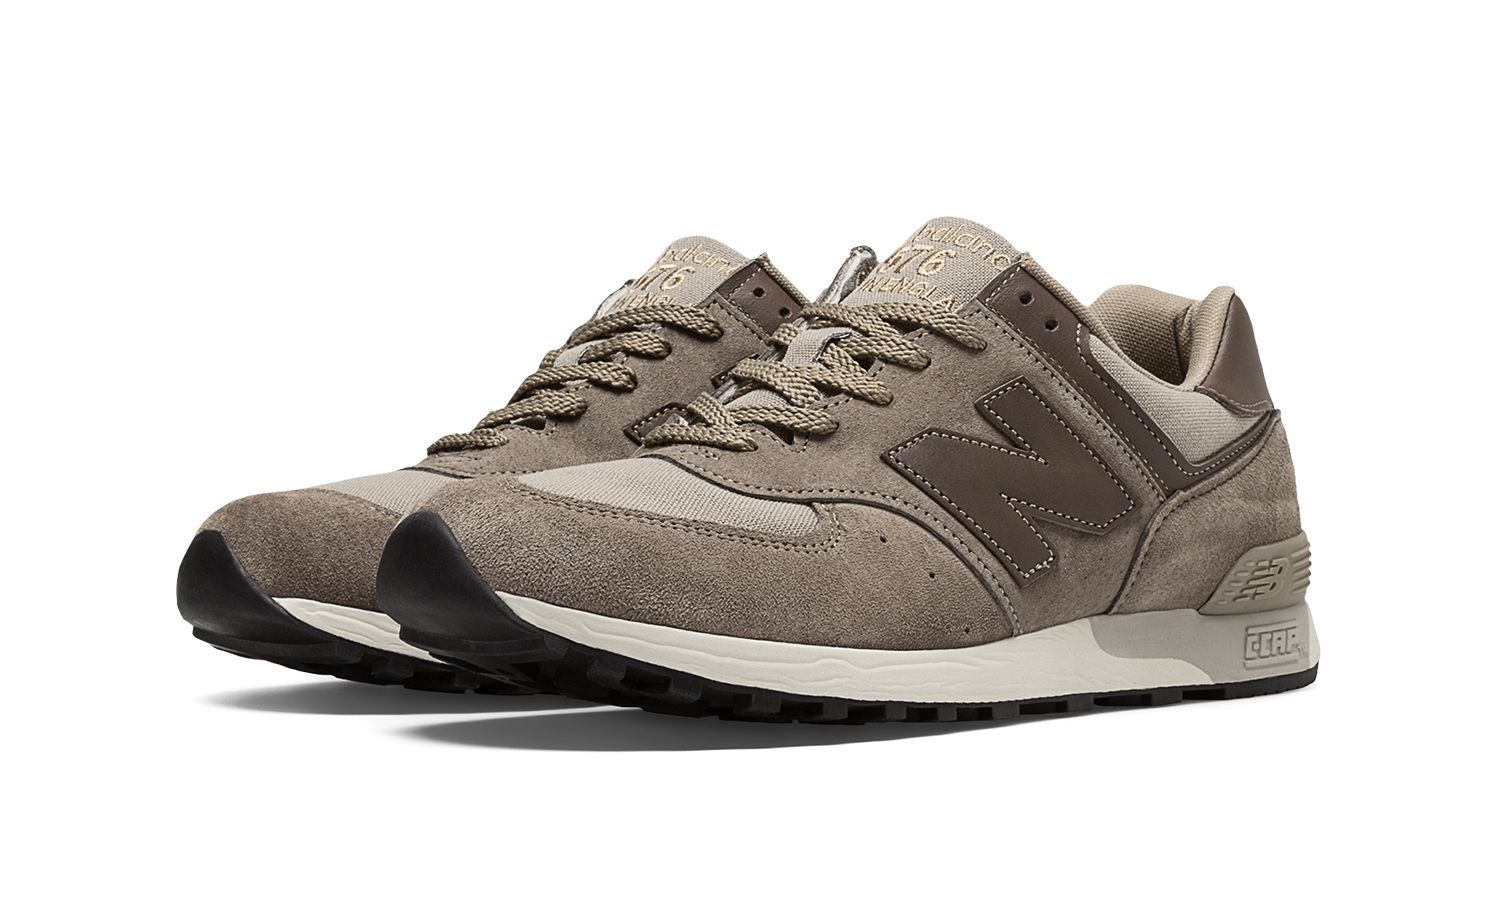 New Balance 576 Neutral Made in UK